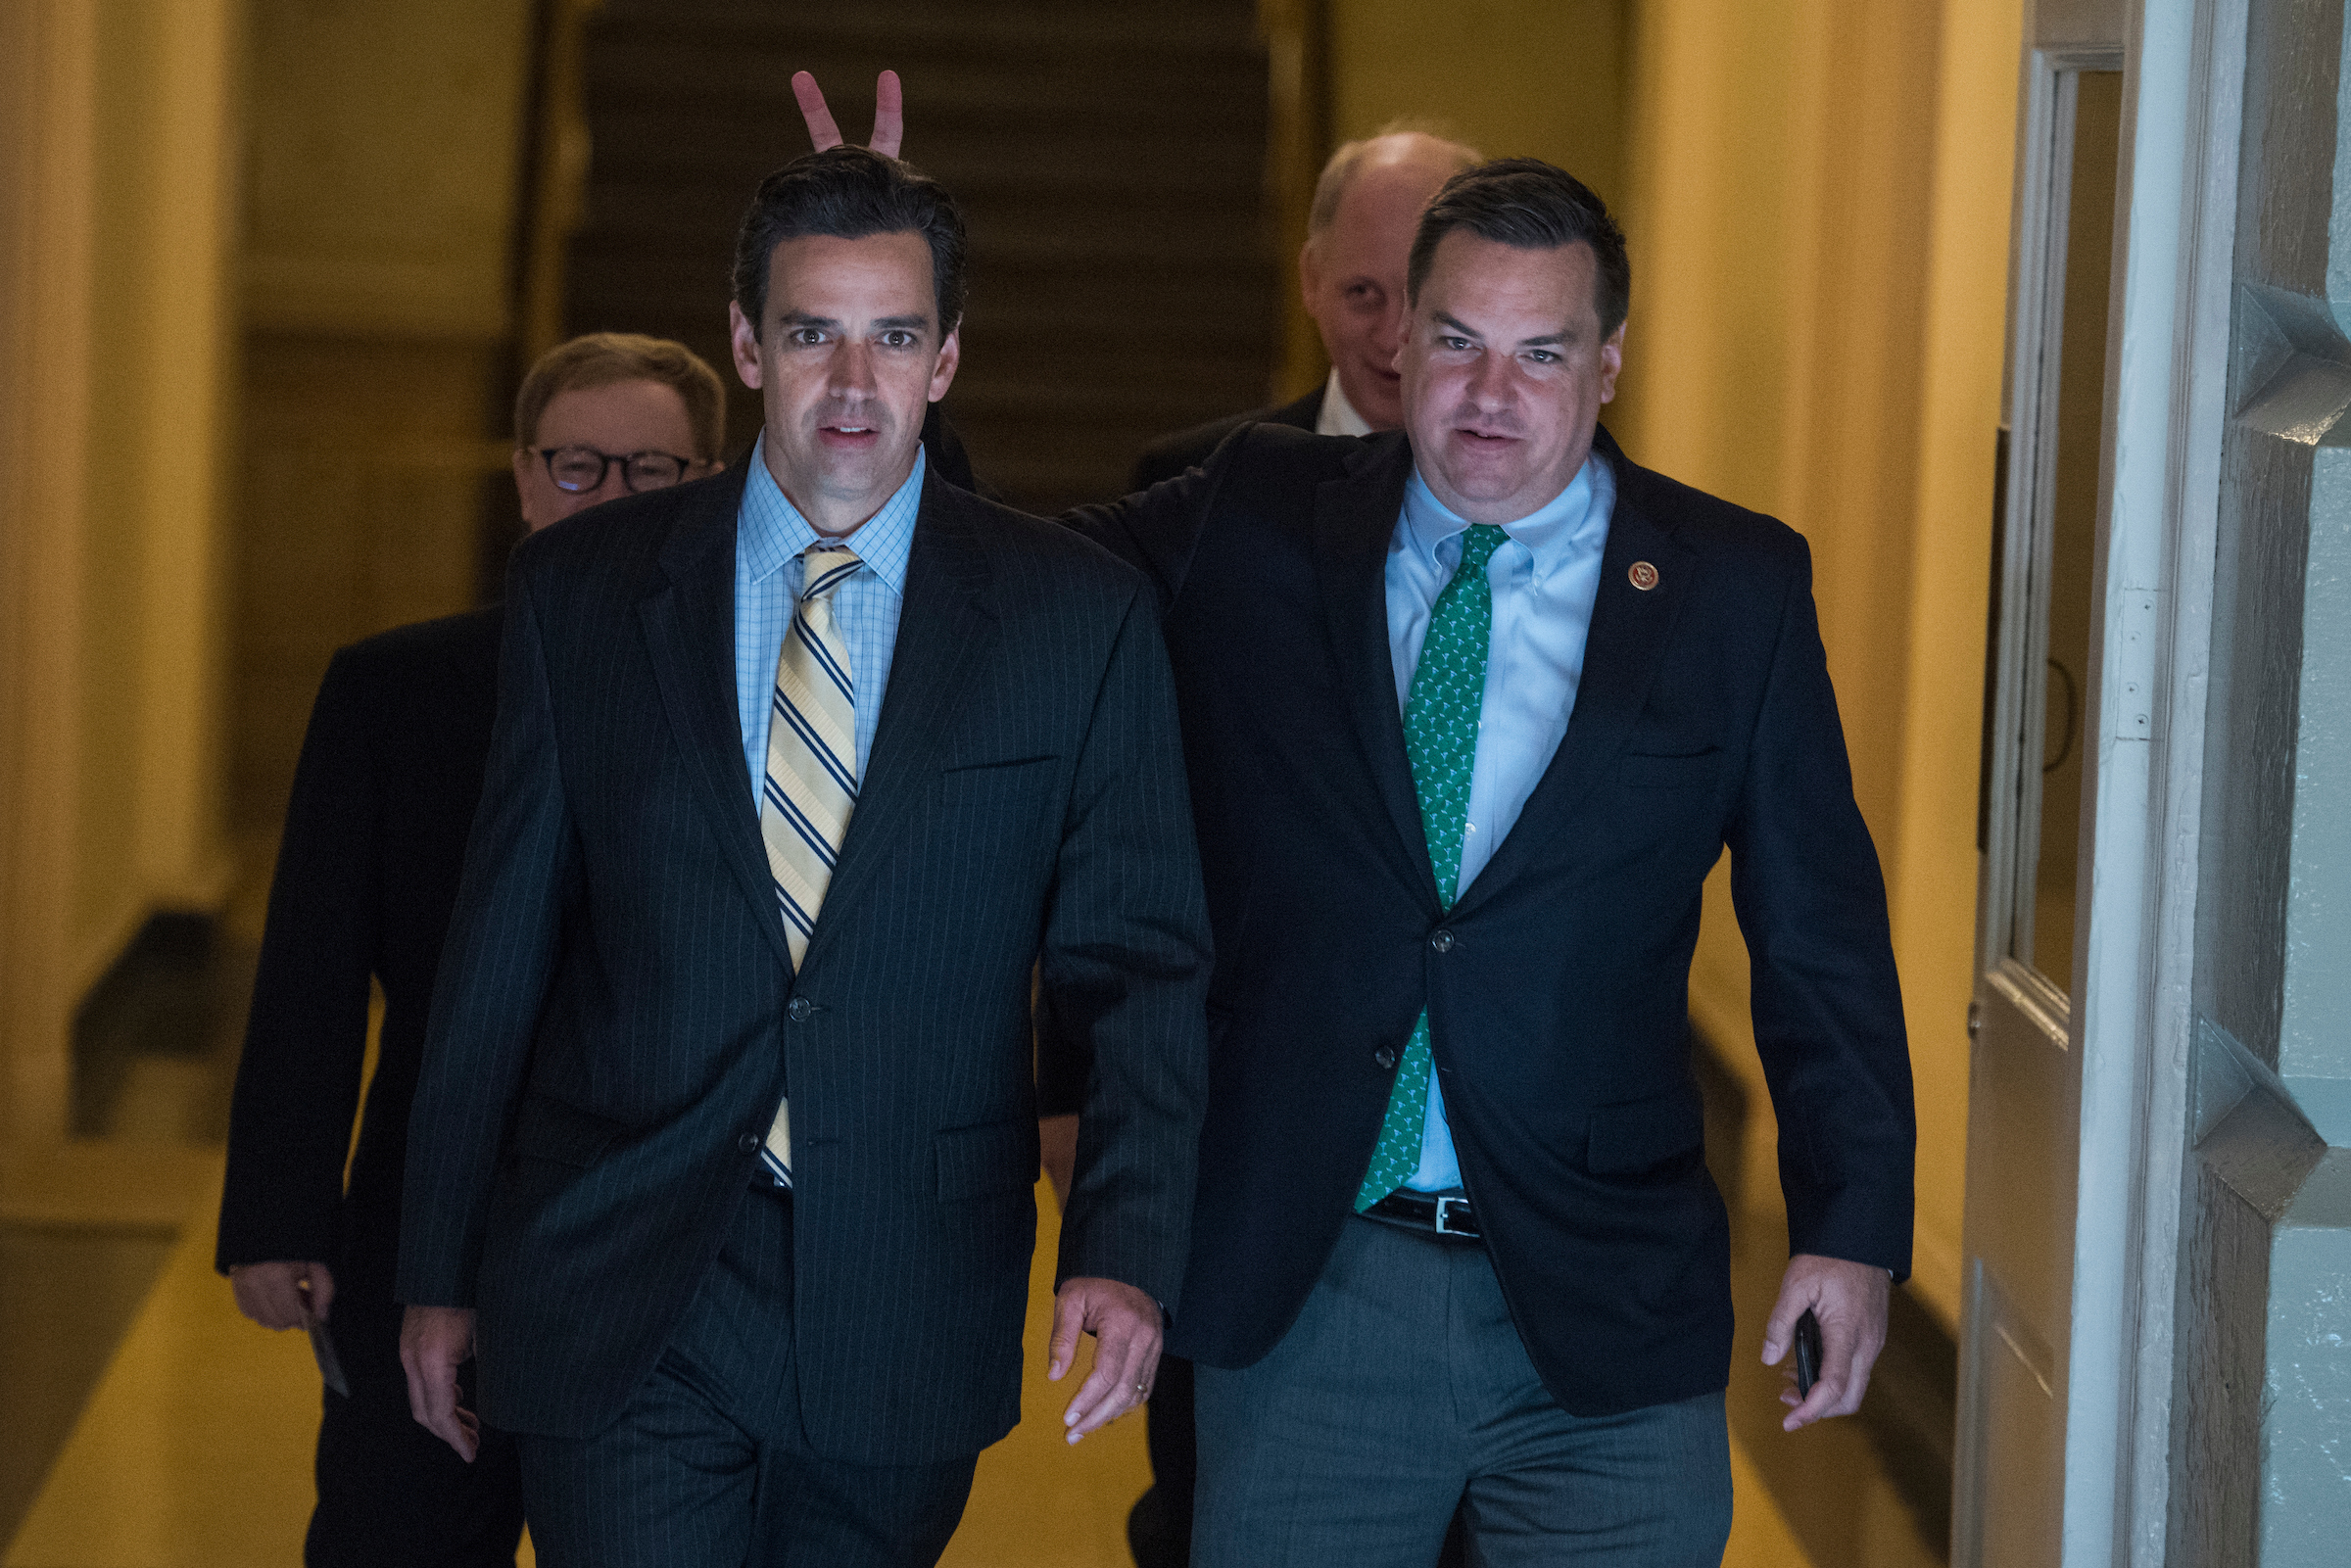 UNITED STATES - NOVEMBER 16: Rep. Richard Hudson, R-N.C., right, gives Rep. Tom Graves, R-Ga., bunny ears as they make their way to a meeting with President Donald Trump and House Republican Conference in the Capitol to discuss the GOP's tax reform bill on November 16, 2017. (Photo By Tom Williams/CQ Roll Call)